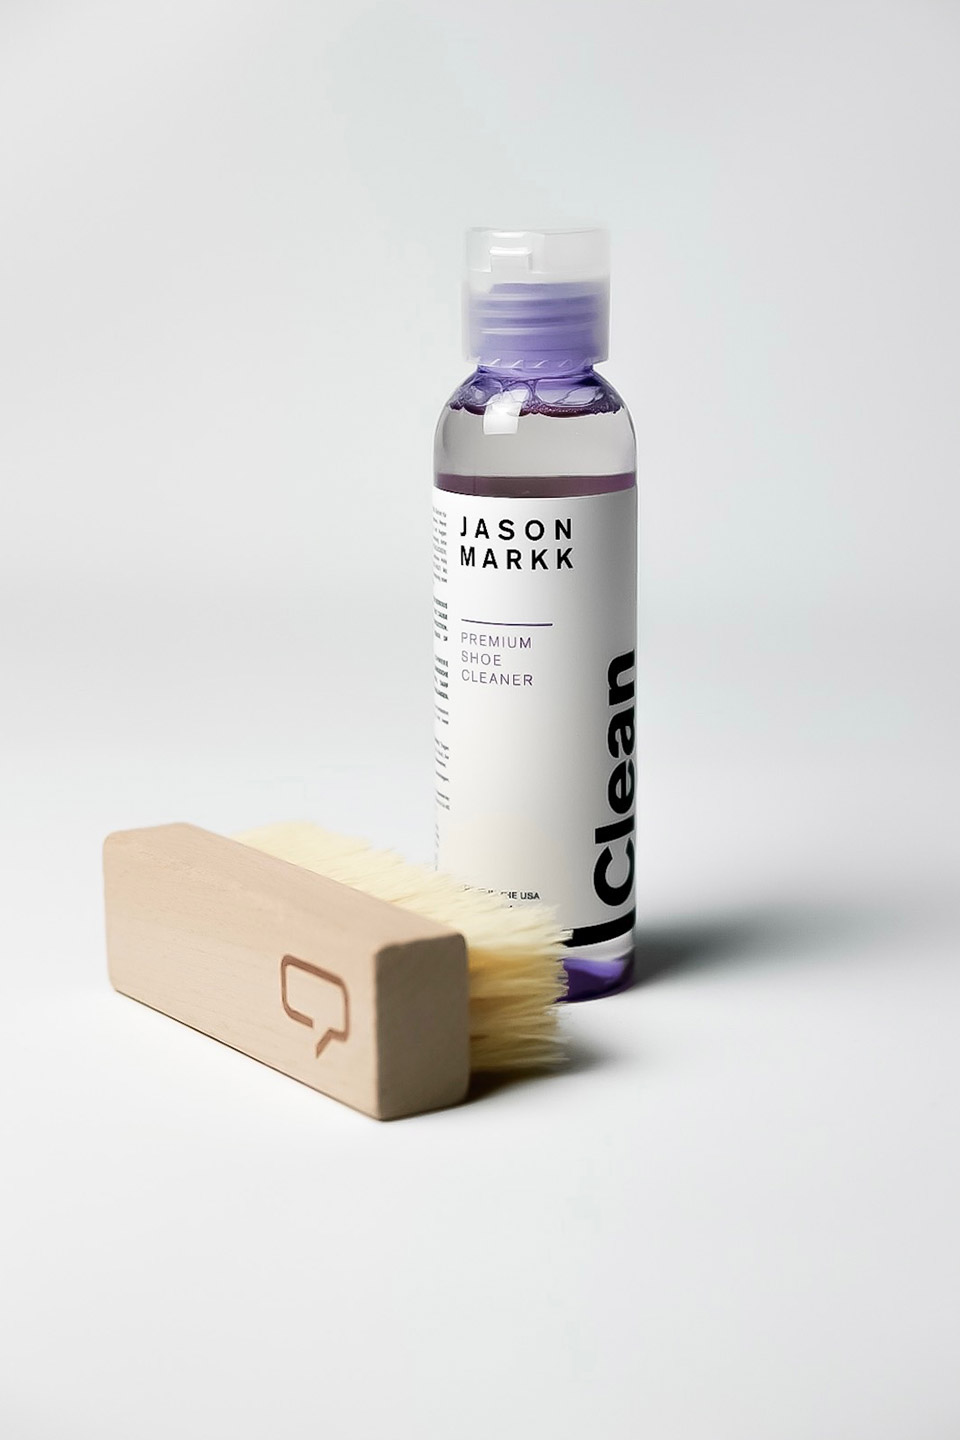 Jason Markk cleaning kit uncoloured